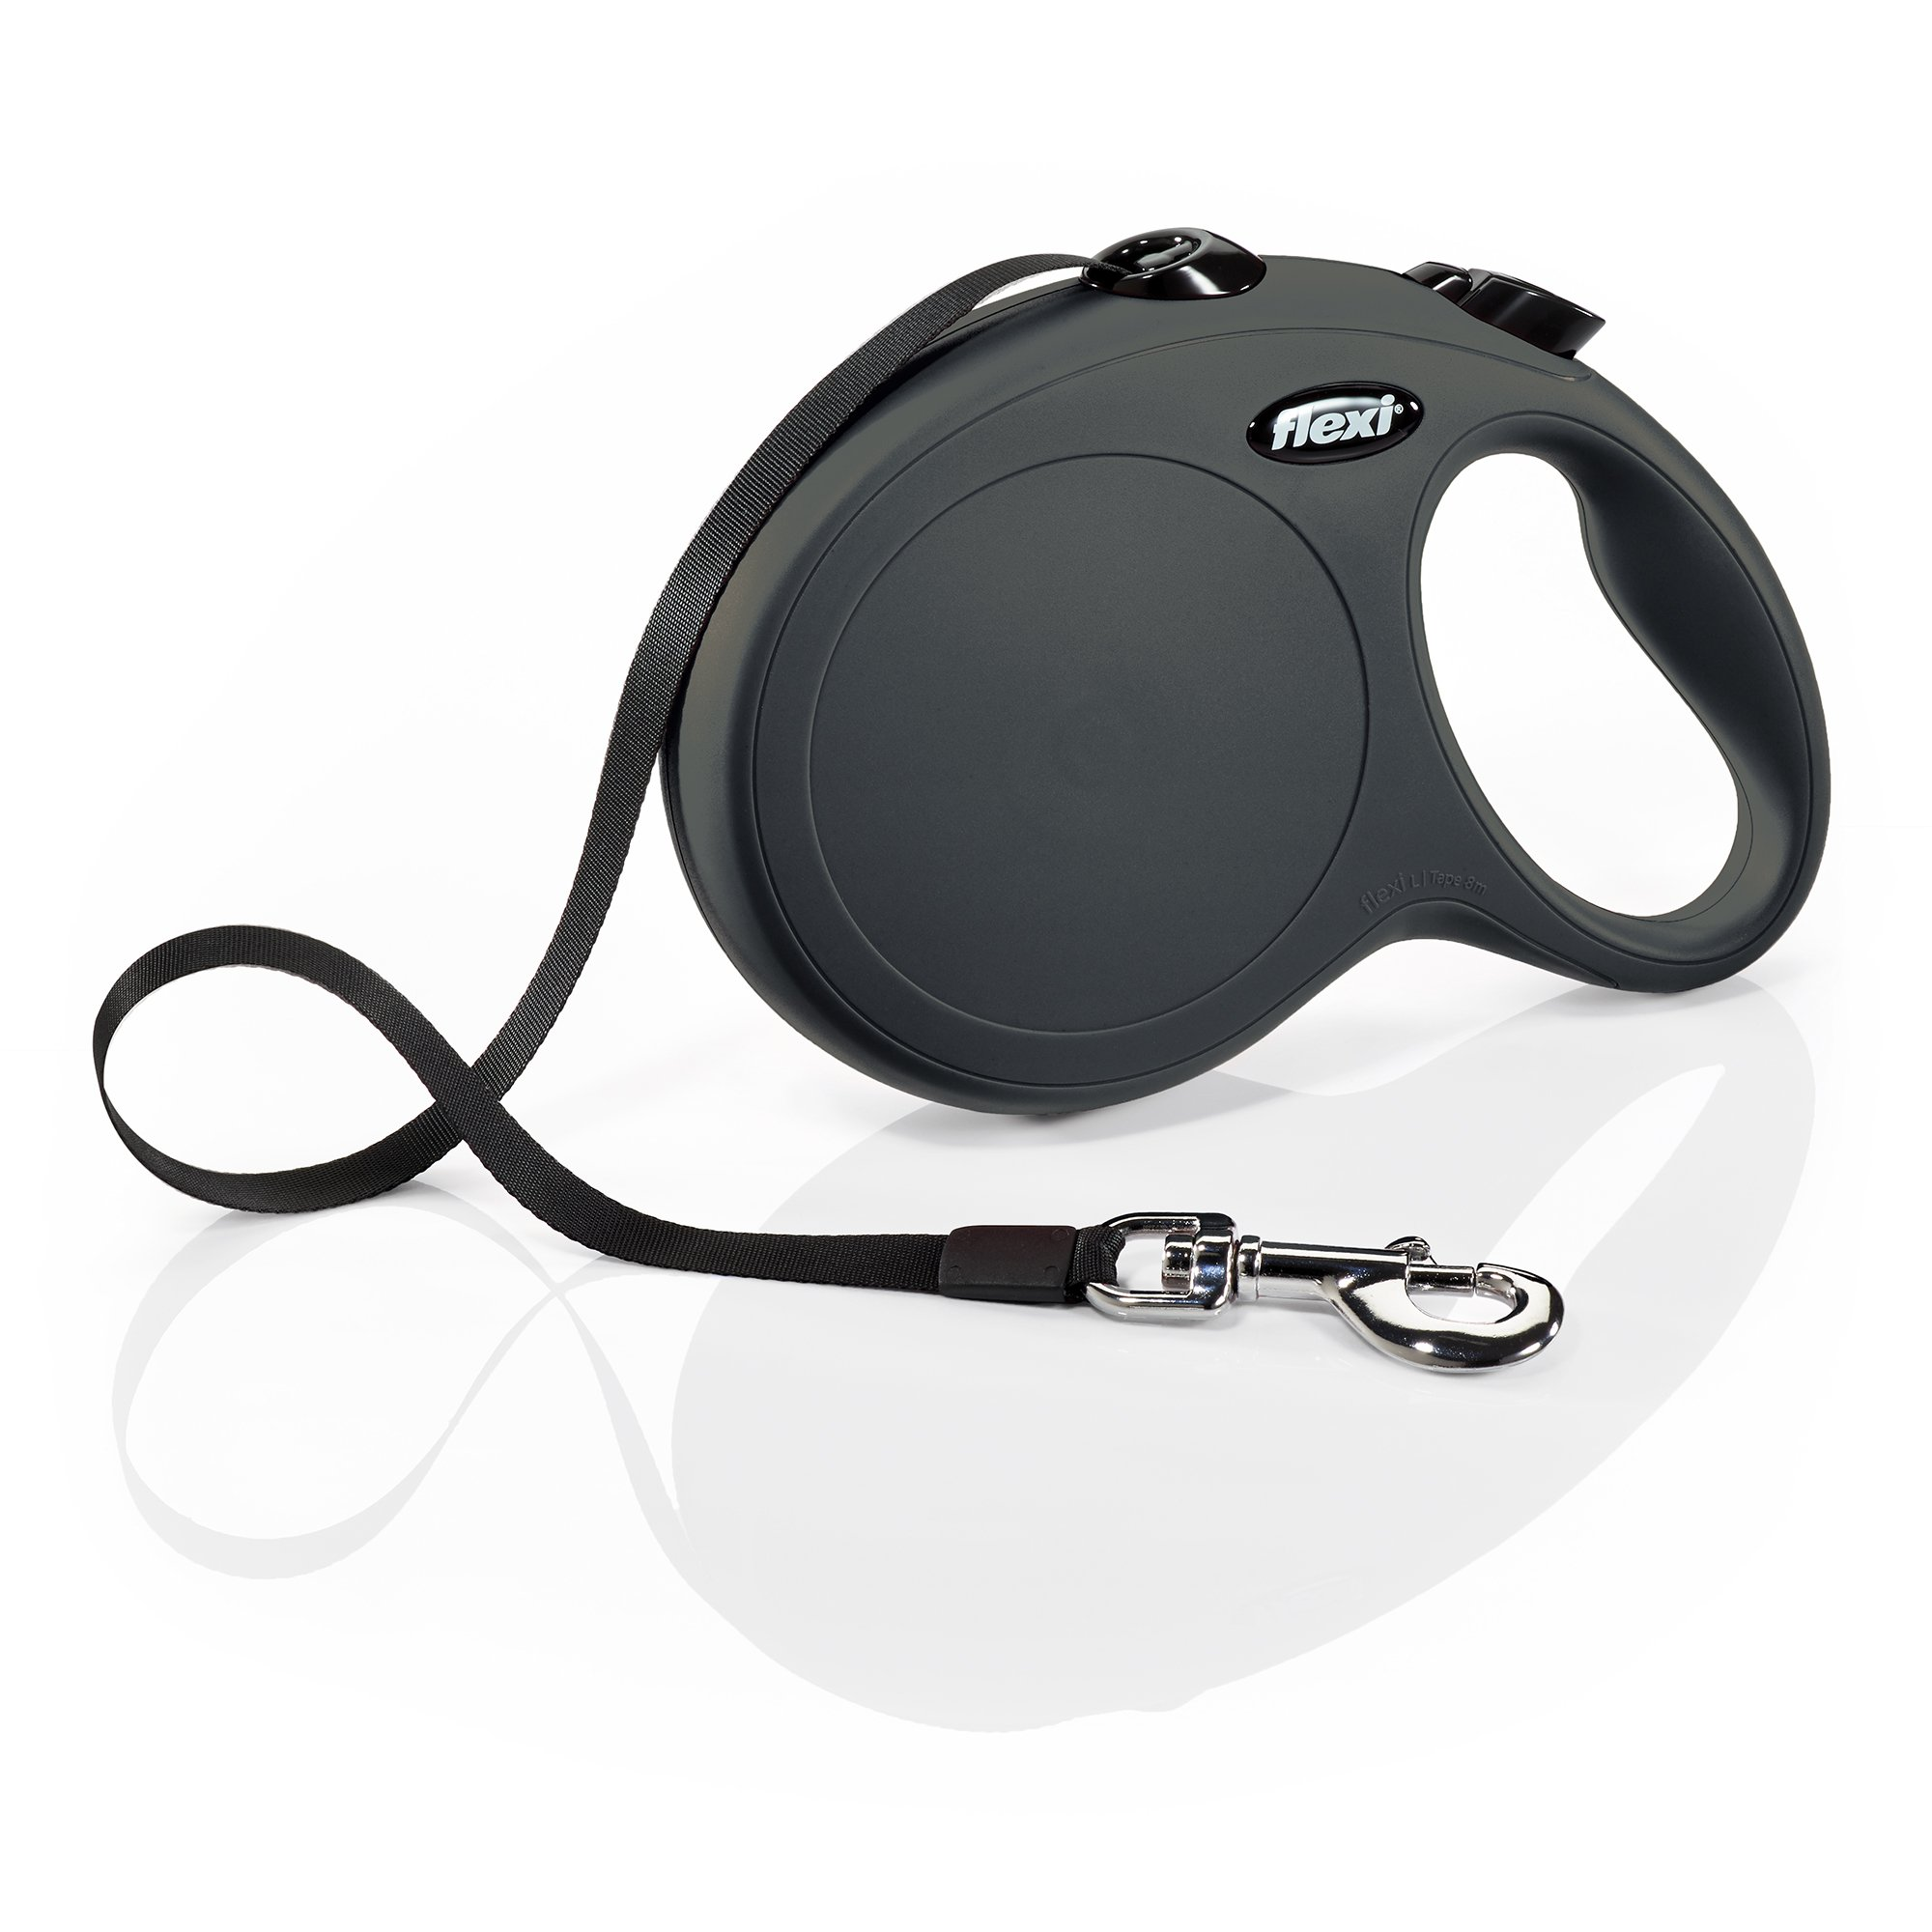 Flexi New Classic Retractable Dog Leash (Tape), 26 ft, Large, Black by Flexi